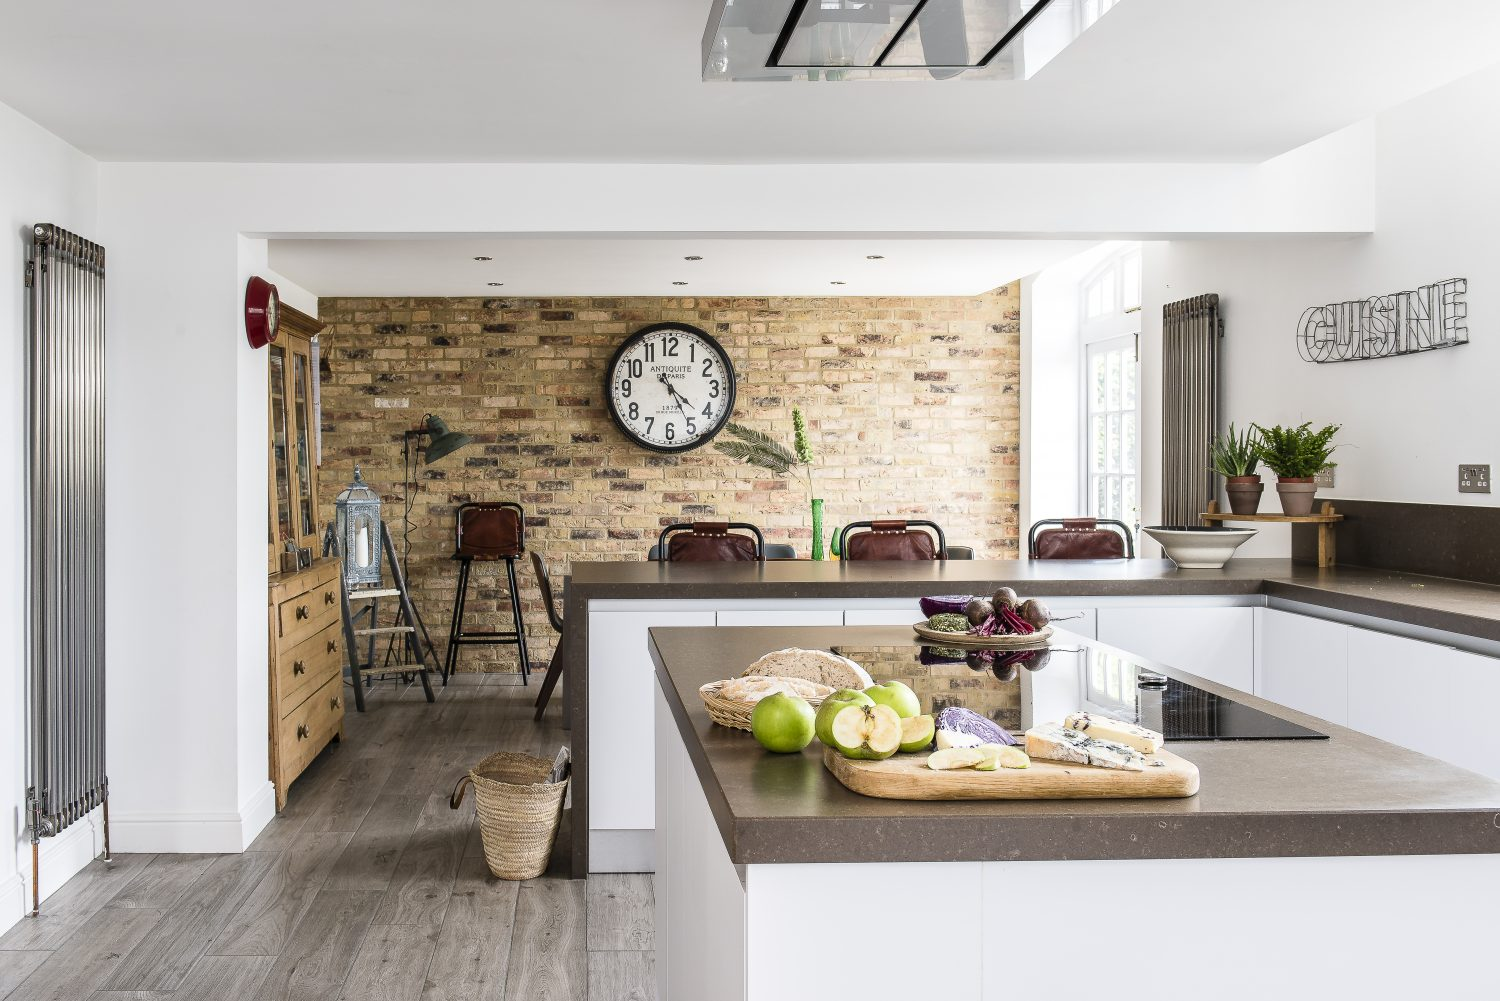 The old bricks at the back of the kitchen are special thin-cut bricks applied like tile